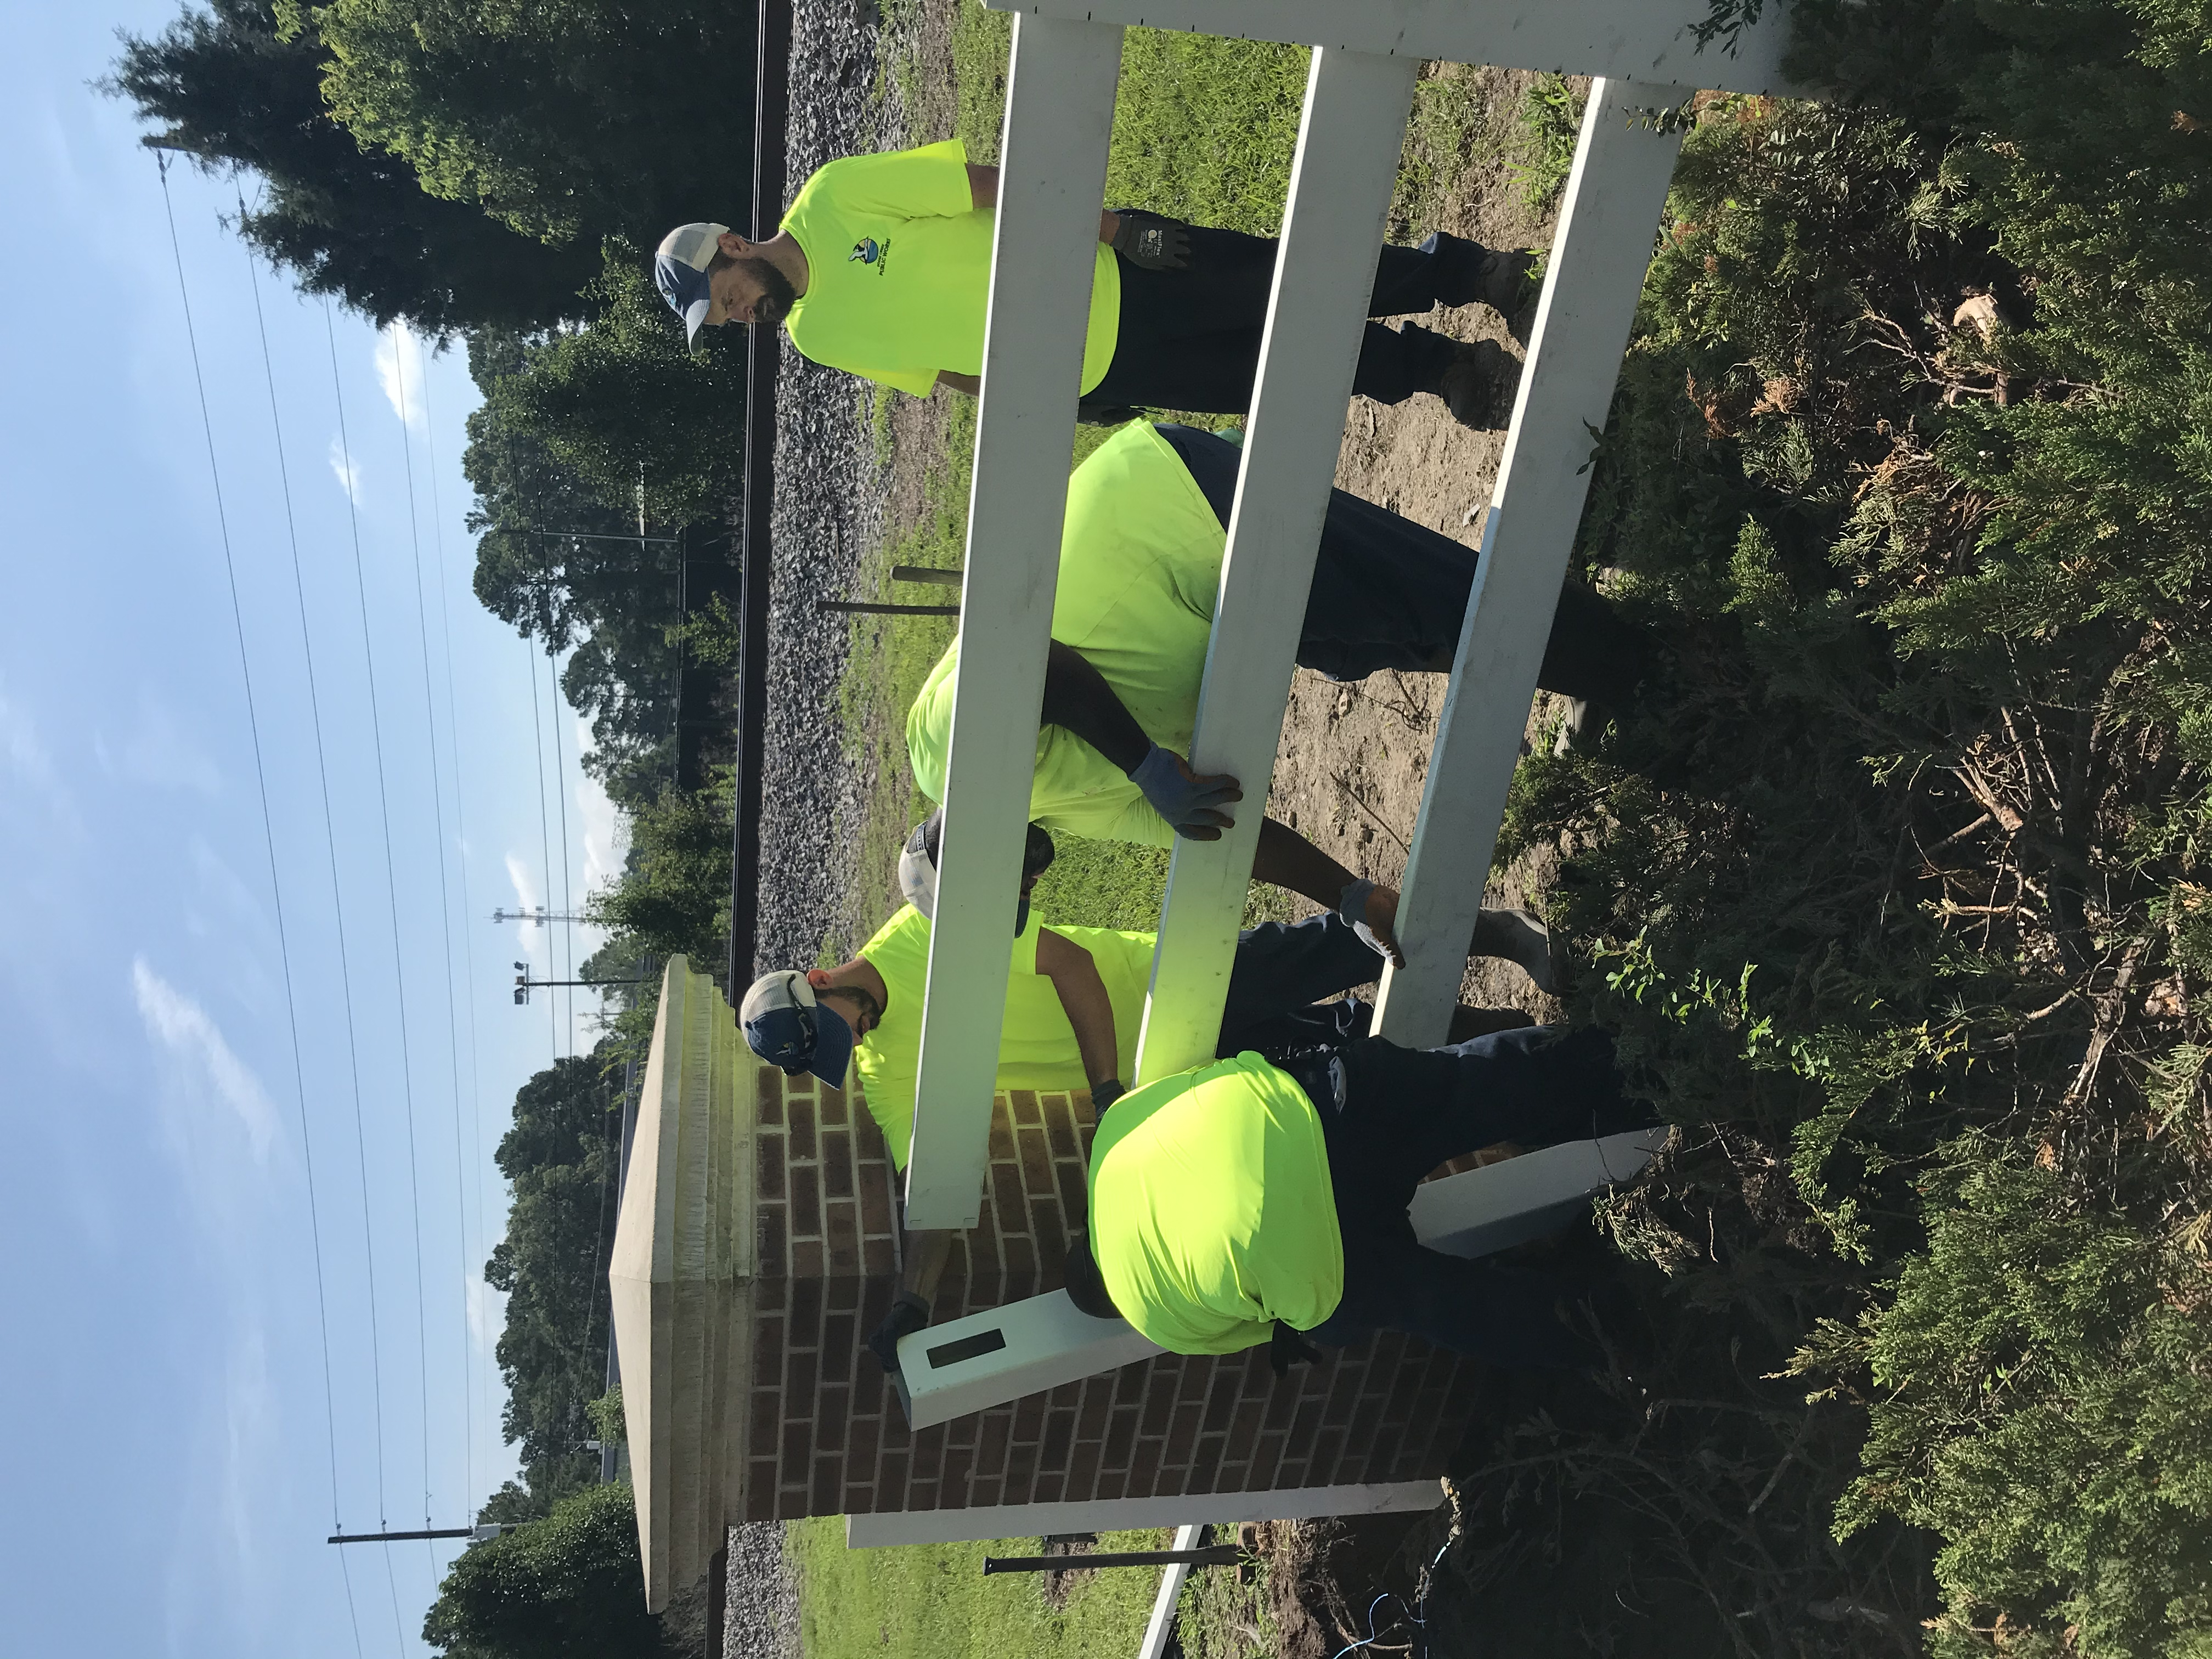 Repair of fence along Hwy 52